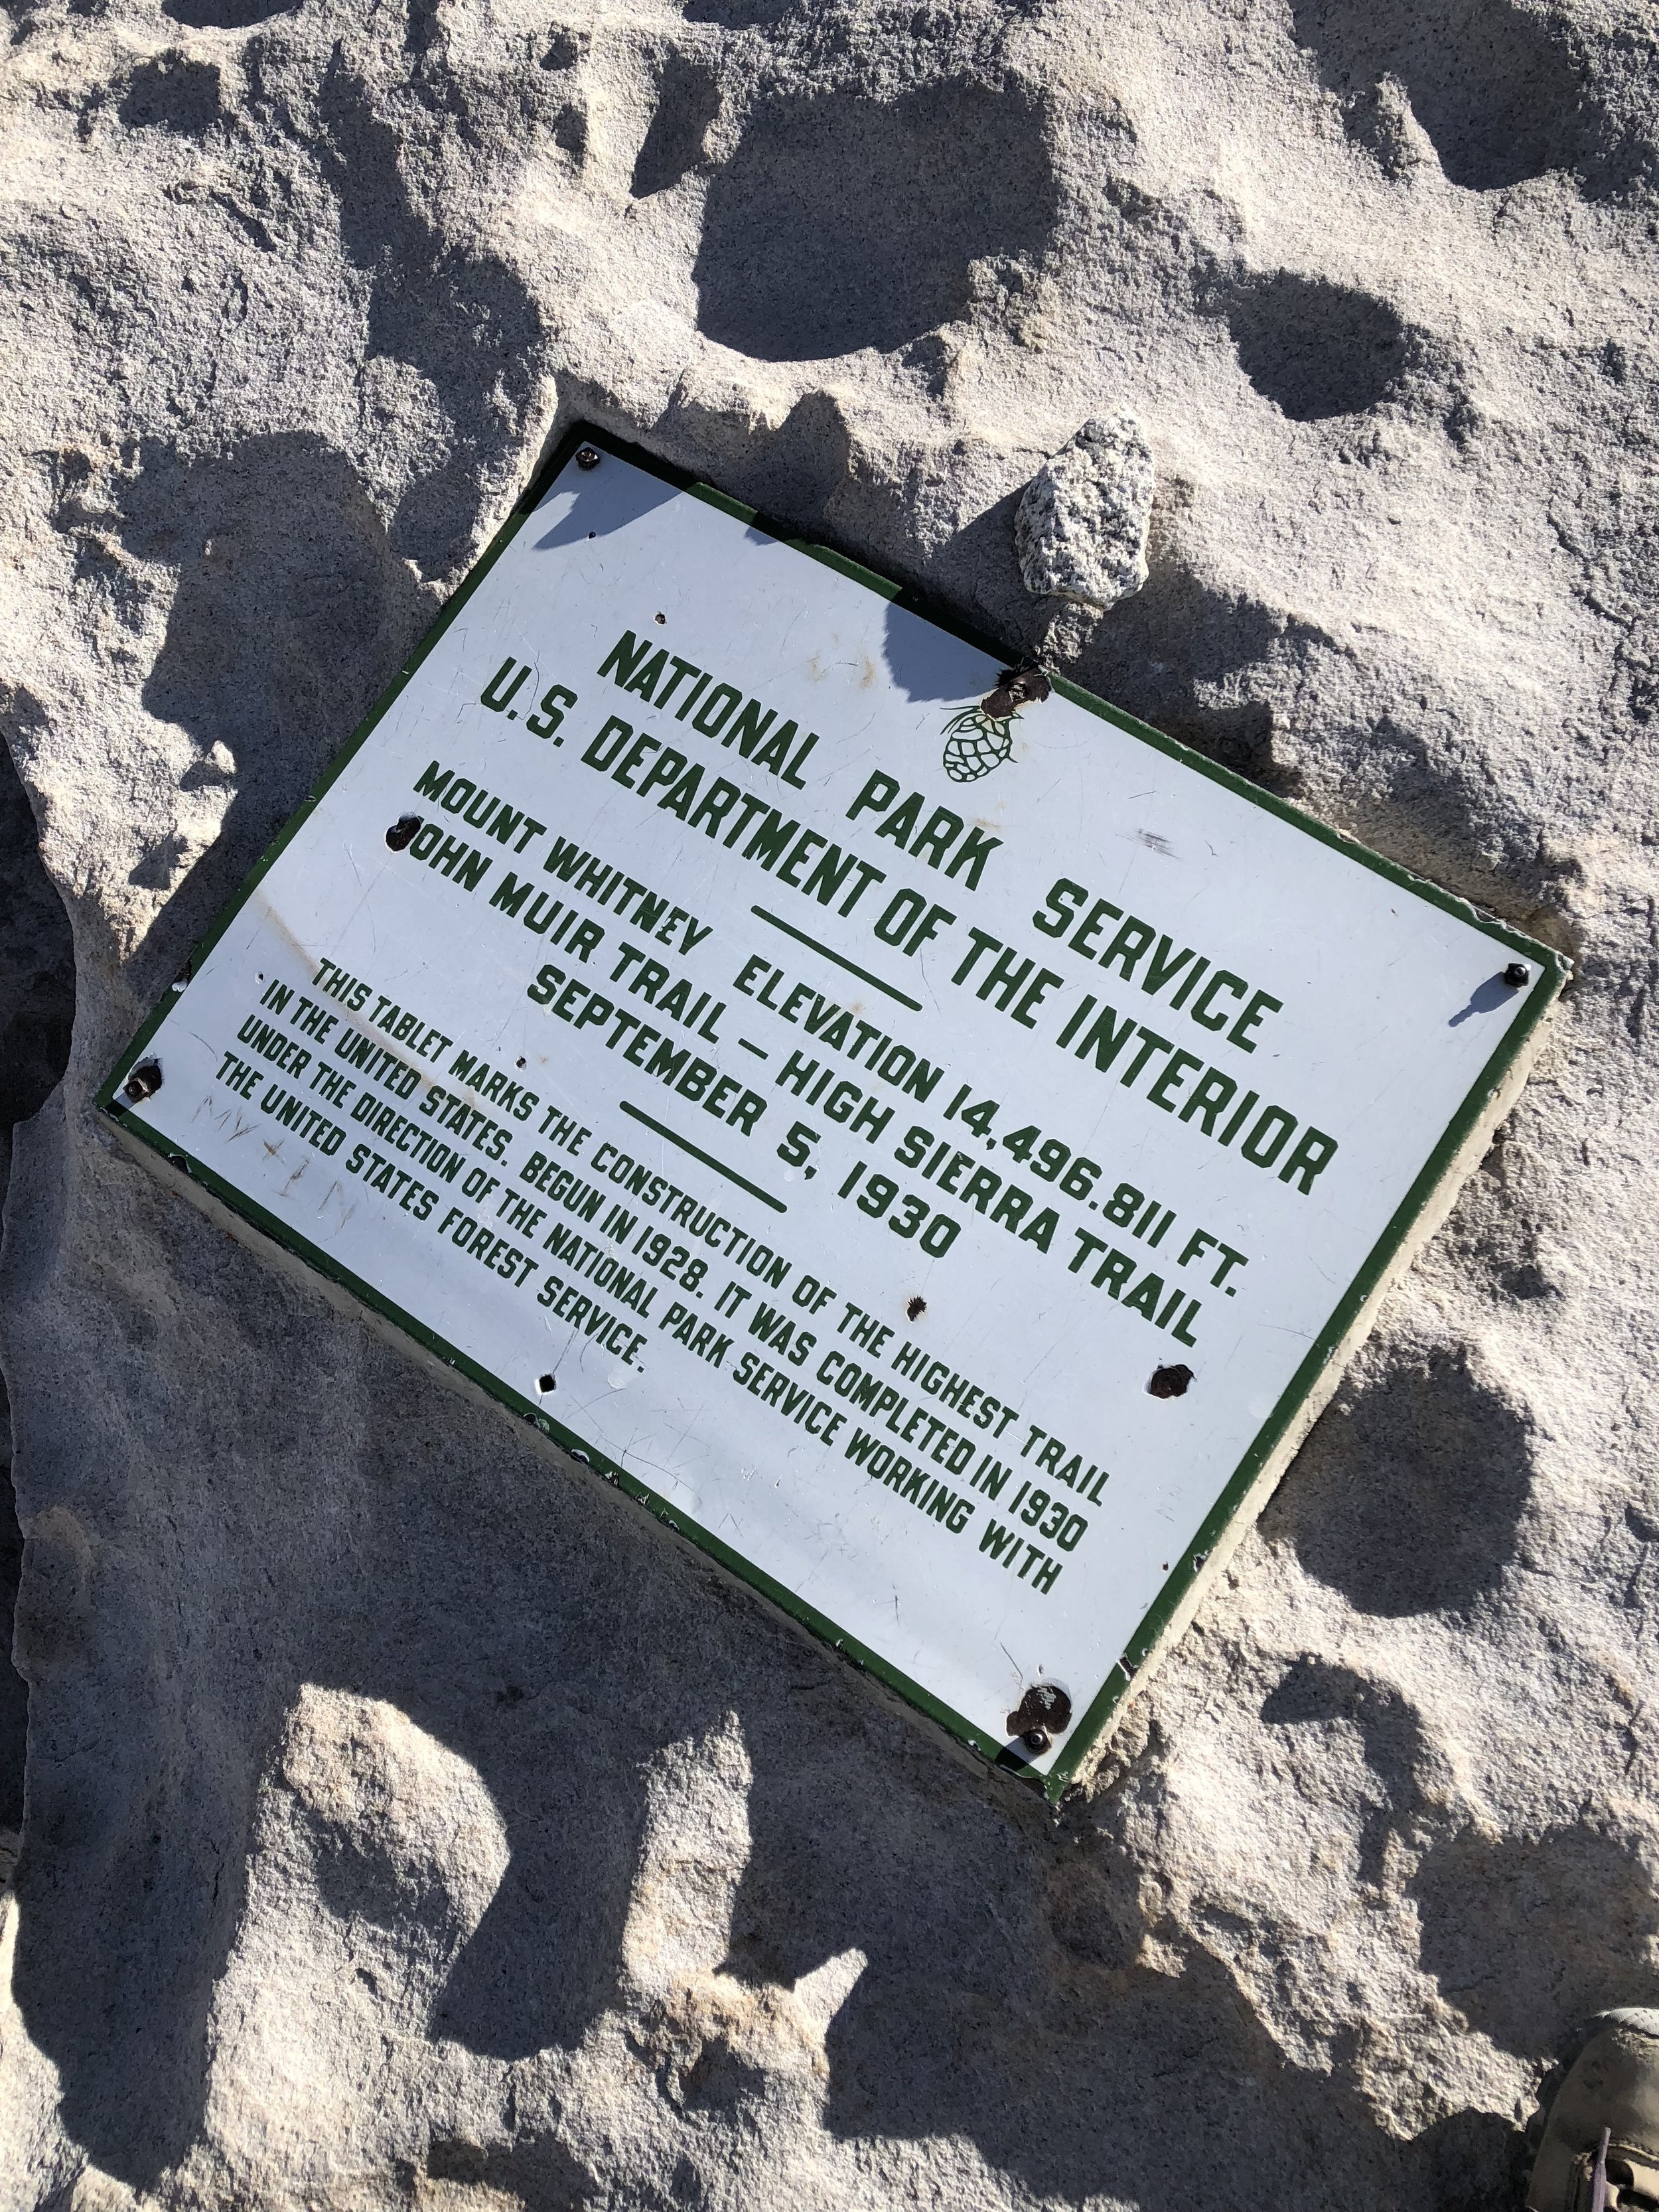 mt whitney summit sign.JPG